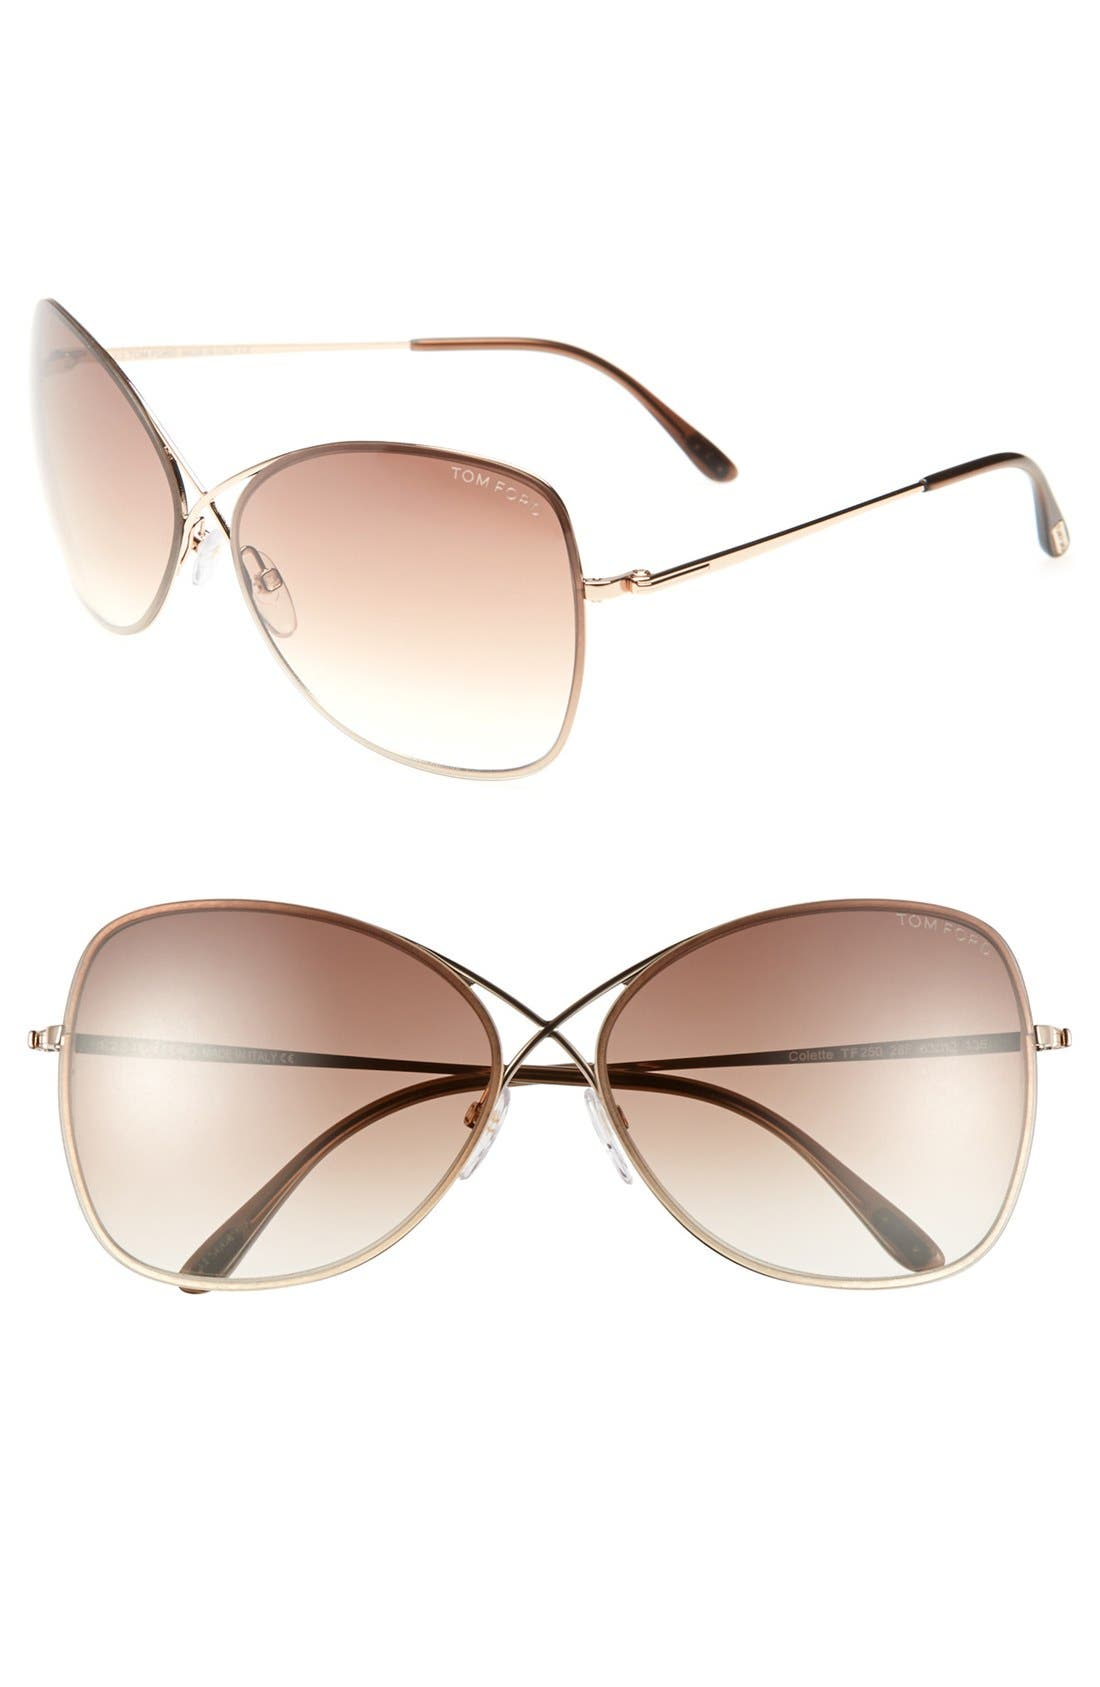 Alternate Image 1 Selected - Tom Ford 'Colette' 63mm Oversize Sunglasses